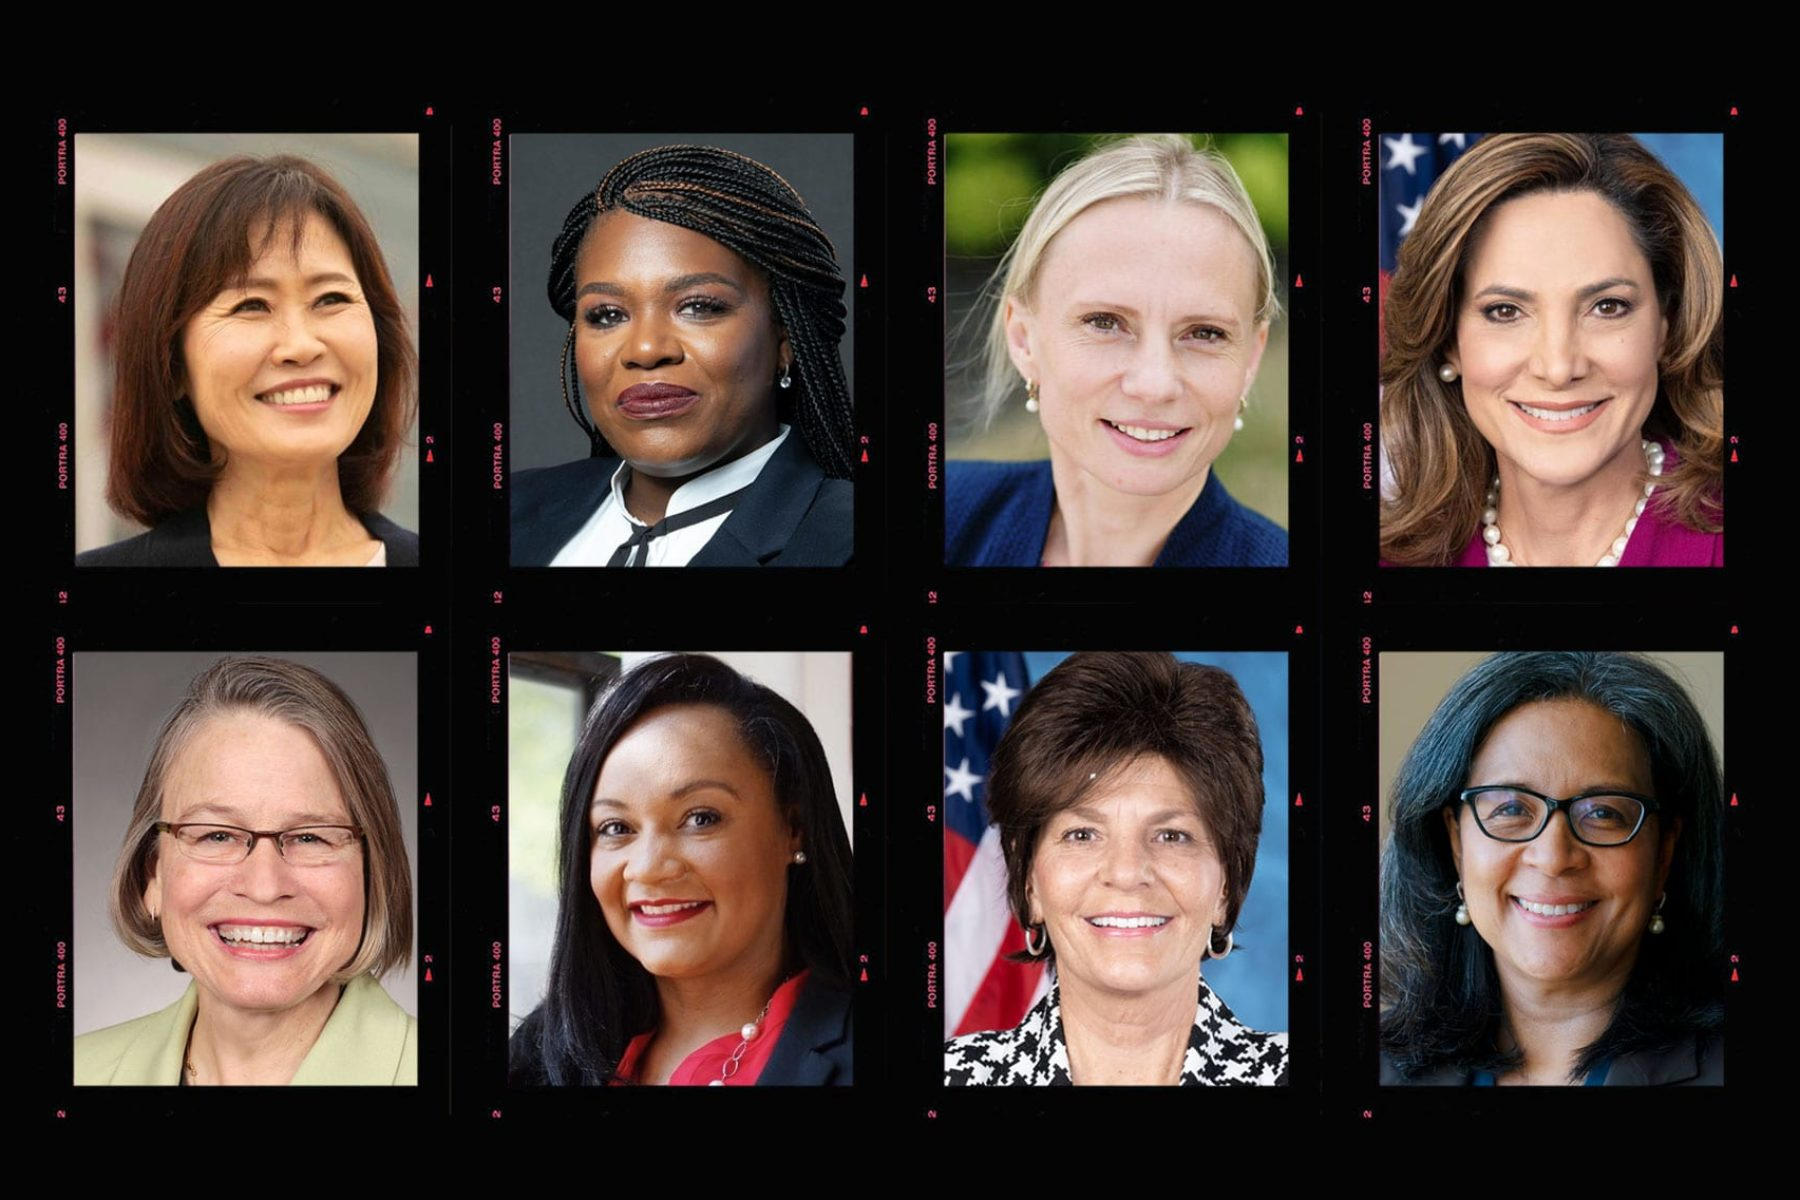 A photo composite of some of the new faces in the House of Representatives.